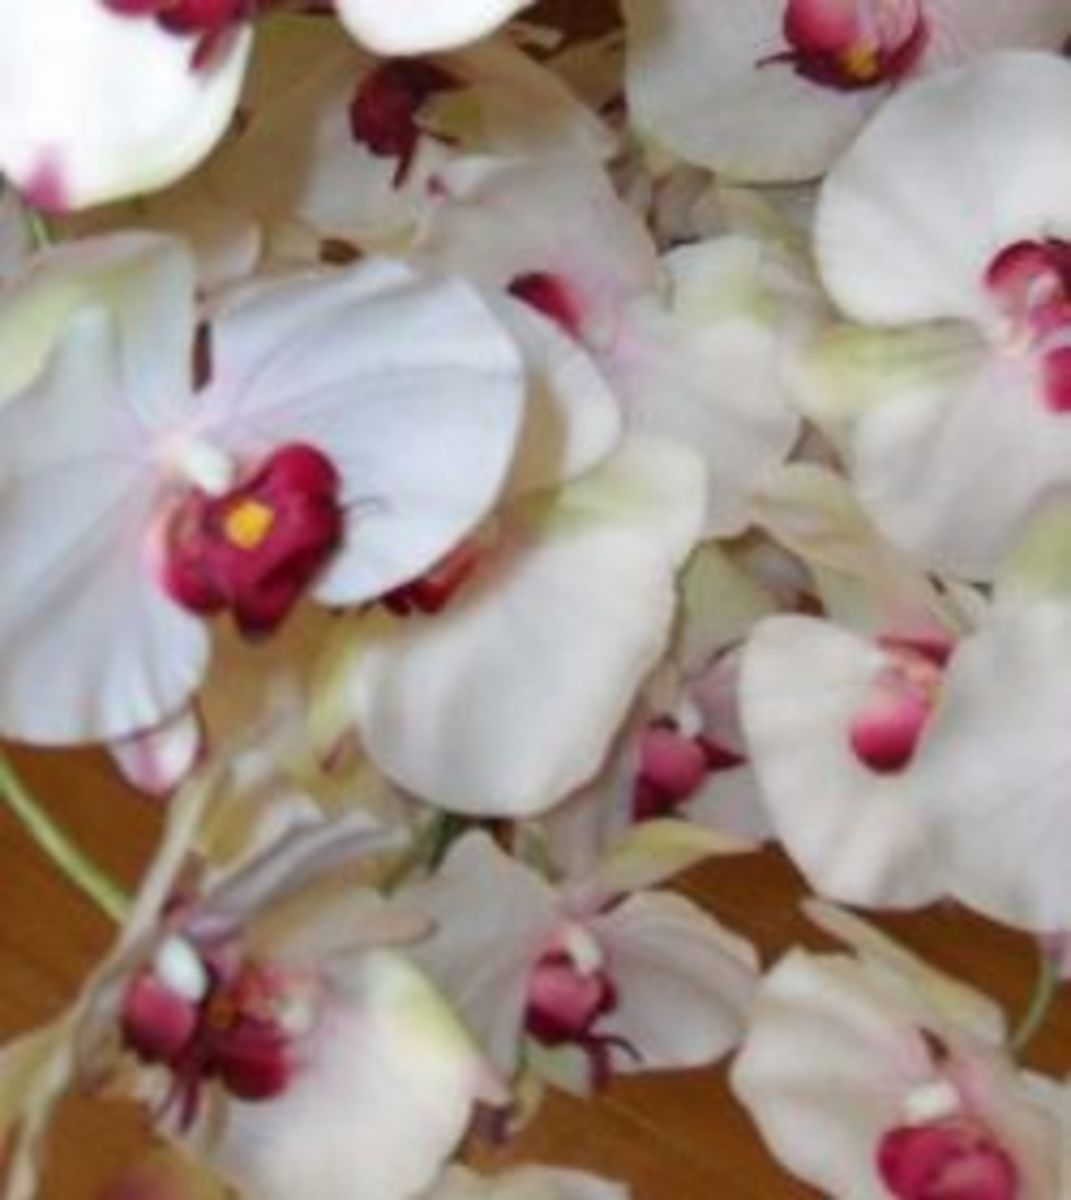 Artificial orchids on natural-looking stems with blooms and buds